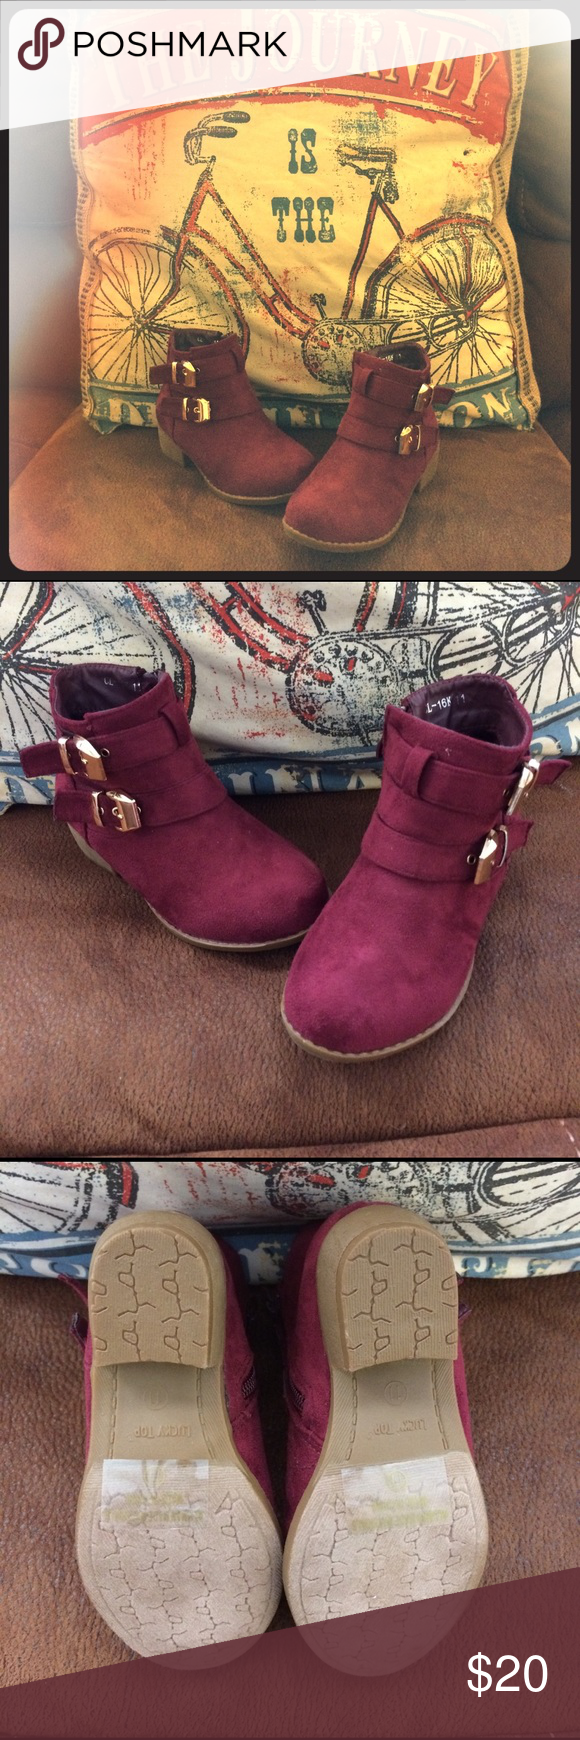 NWOT Faux Suede Boots Adorable ankle booties for a stylish little girl...never got to give them tinny niece this they are new without tag--PERFECT CONDITION. Zippers on inside, small heel and gold buckles for decor. Lucky Top Shoes Boots